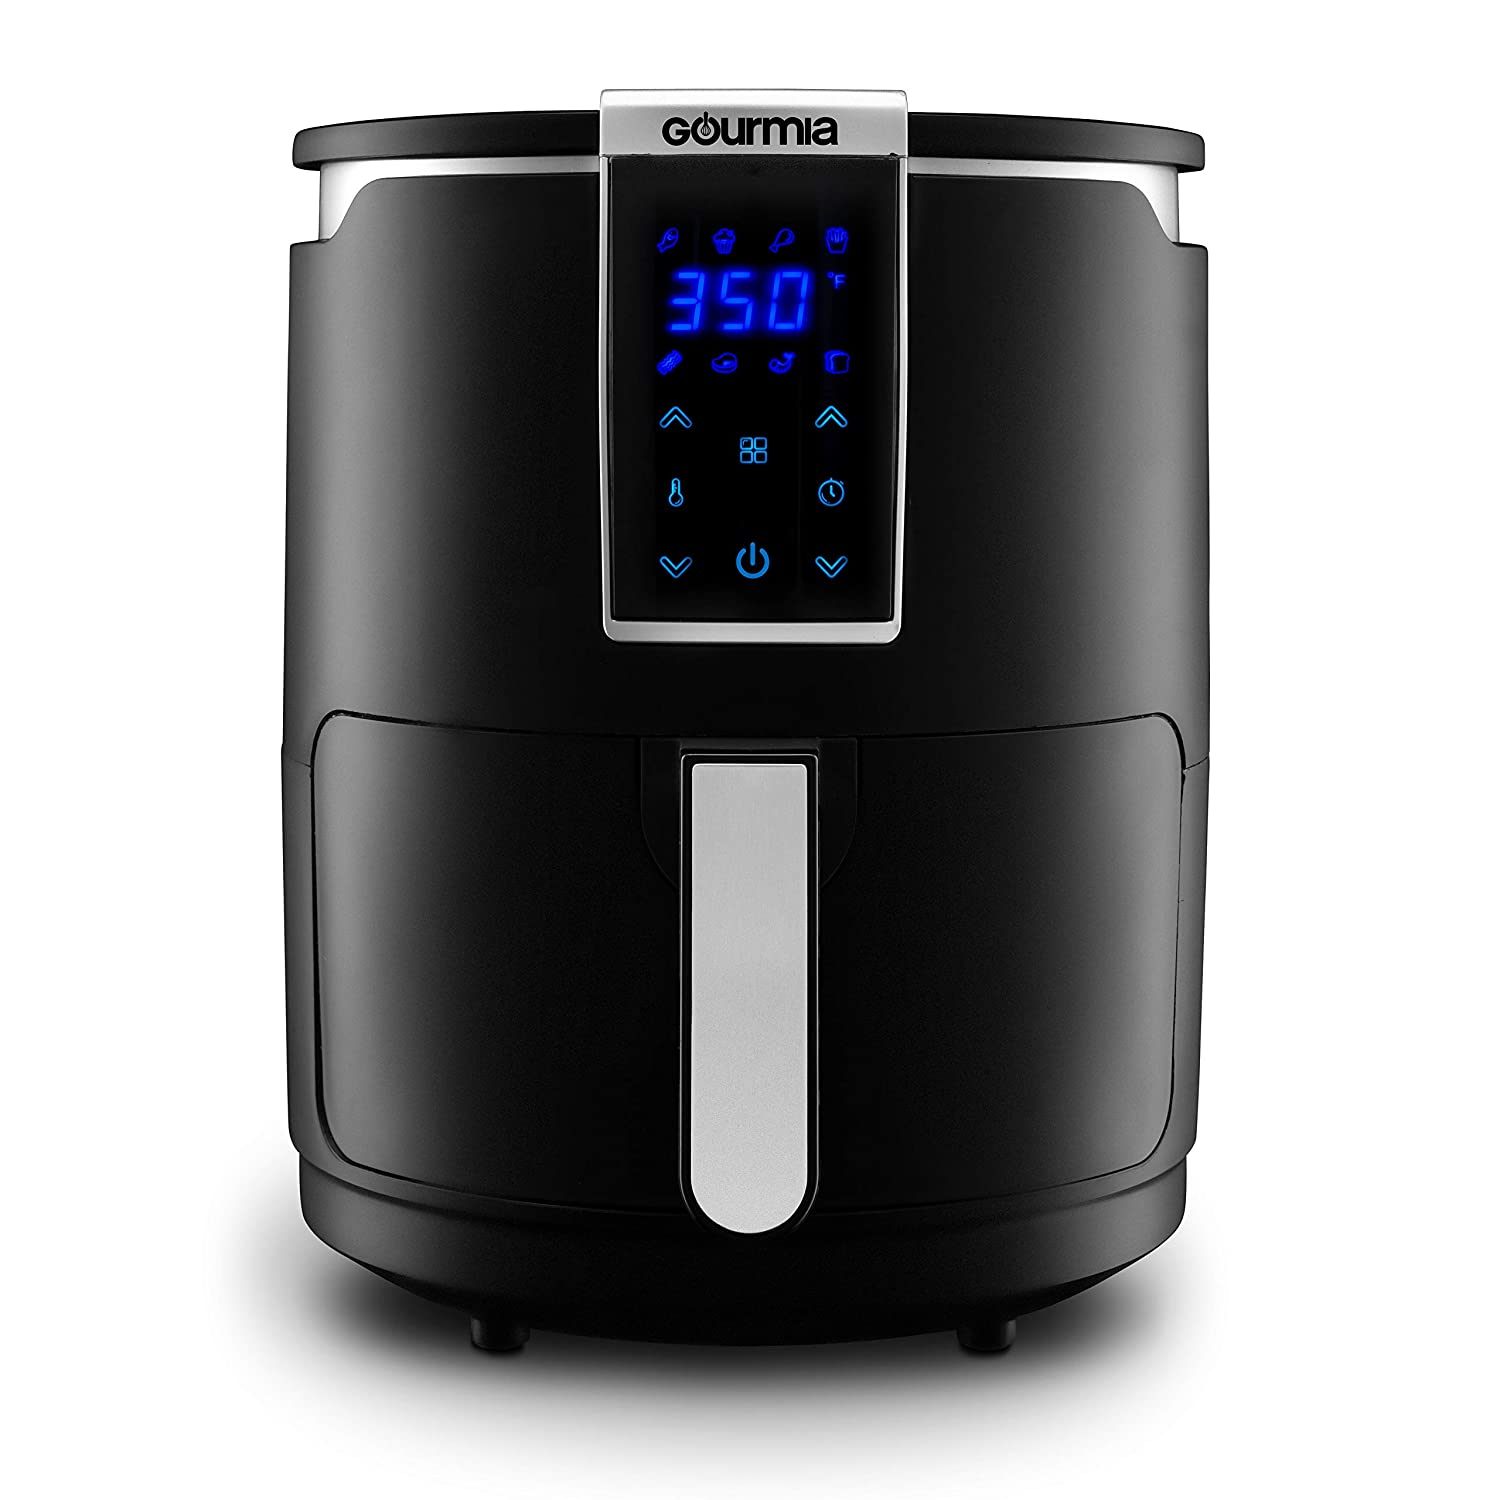 Gourmia GAF265 Digital Air Fryer | Oil-Free Healthy Cooking | 4-Quart Capacity | 8 Cook Modes | Removable, Dishwasher-Safe Tray | Free Recipe Book Included